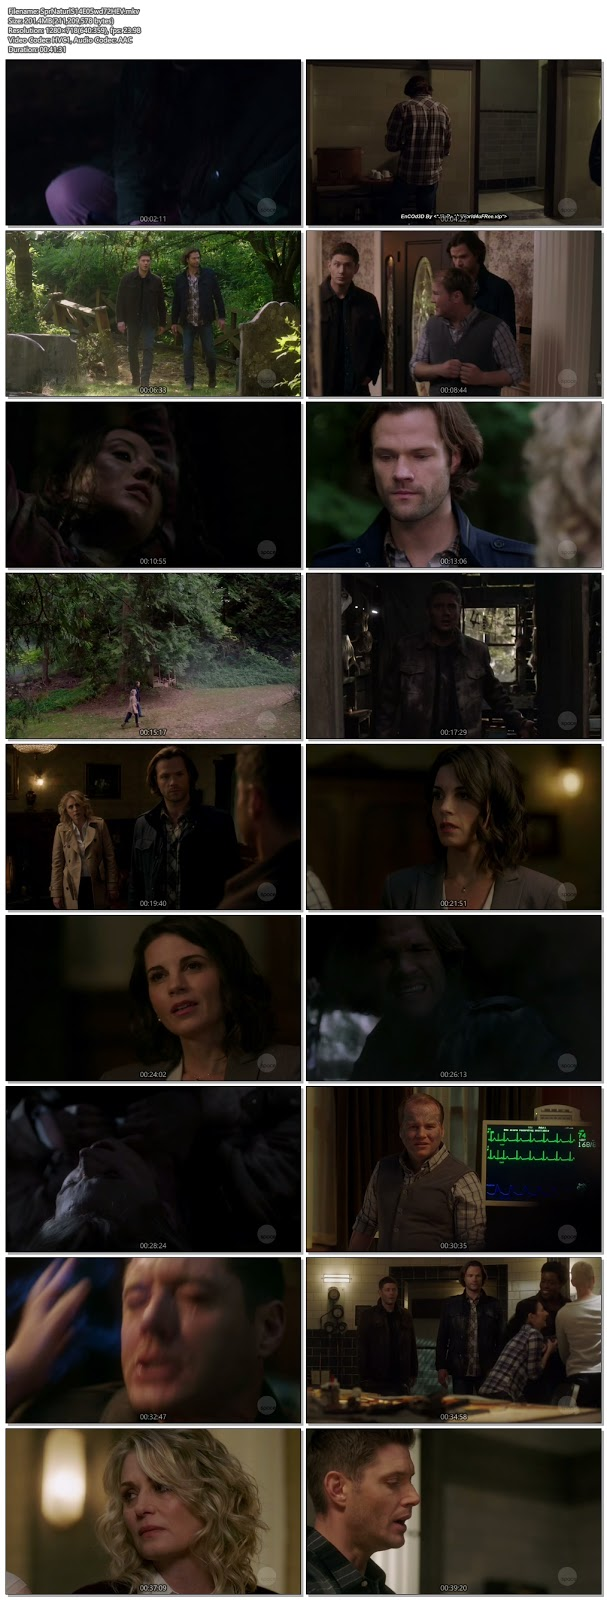 Supernatural S14 Episode 05 720p HDTV 200MB ESub x265 HEVC , hollwood tv series Supernatural S14 Episode 05 720p hdtv tv show hevc x265 hdrip 200mb 250mb free download or watch online at world4ufree.vip